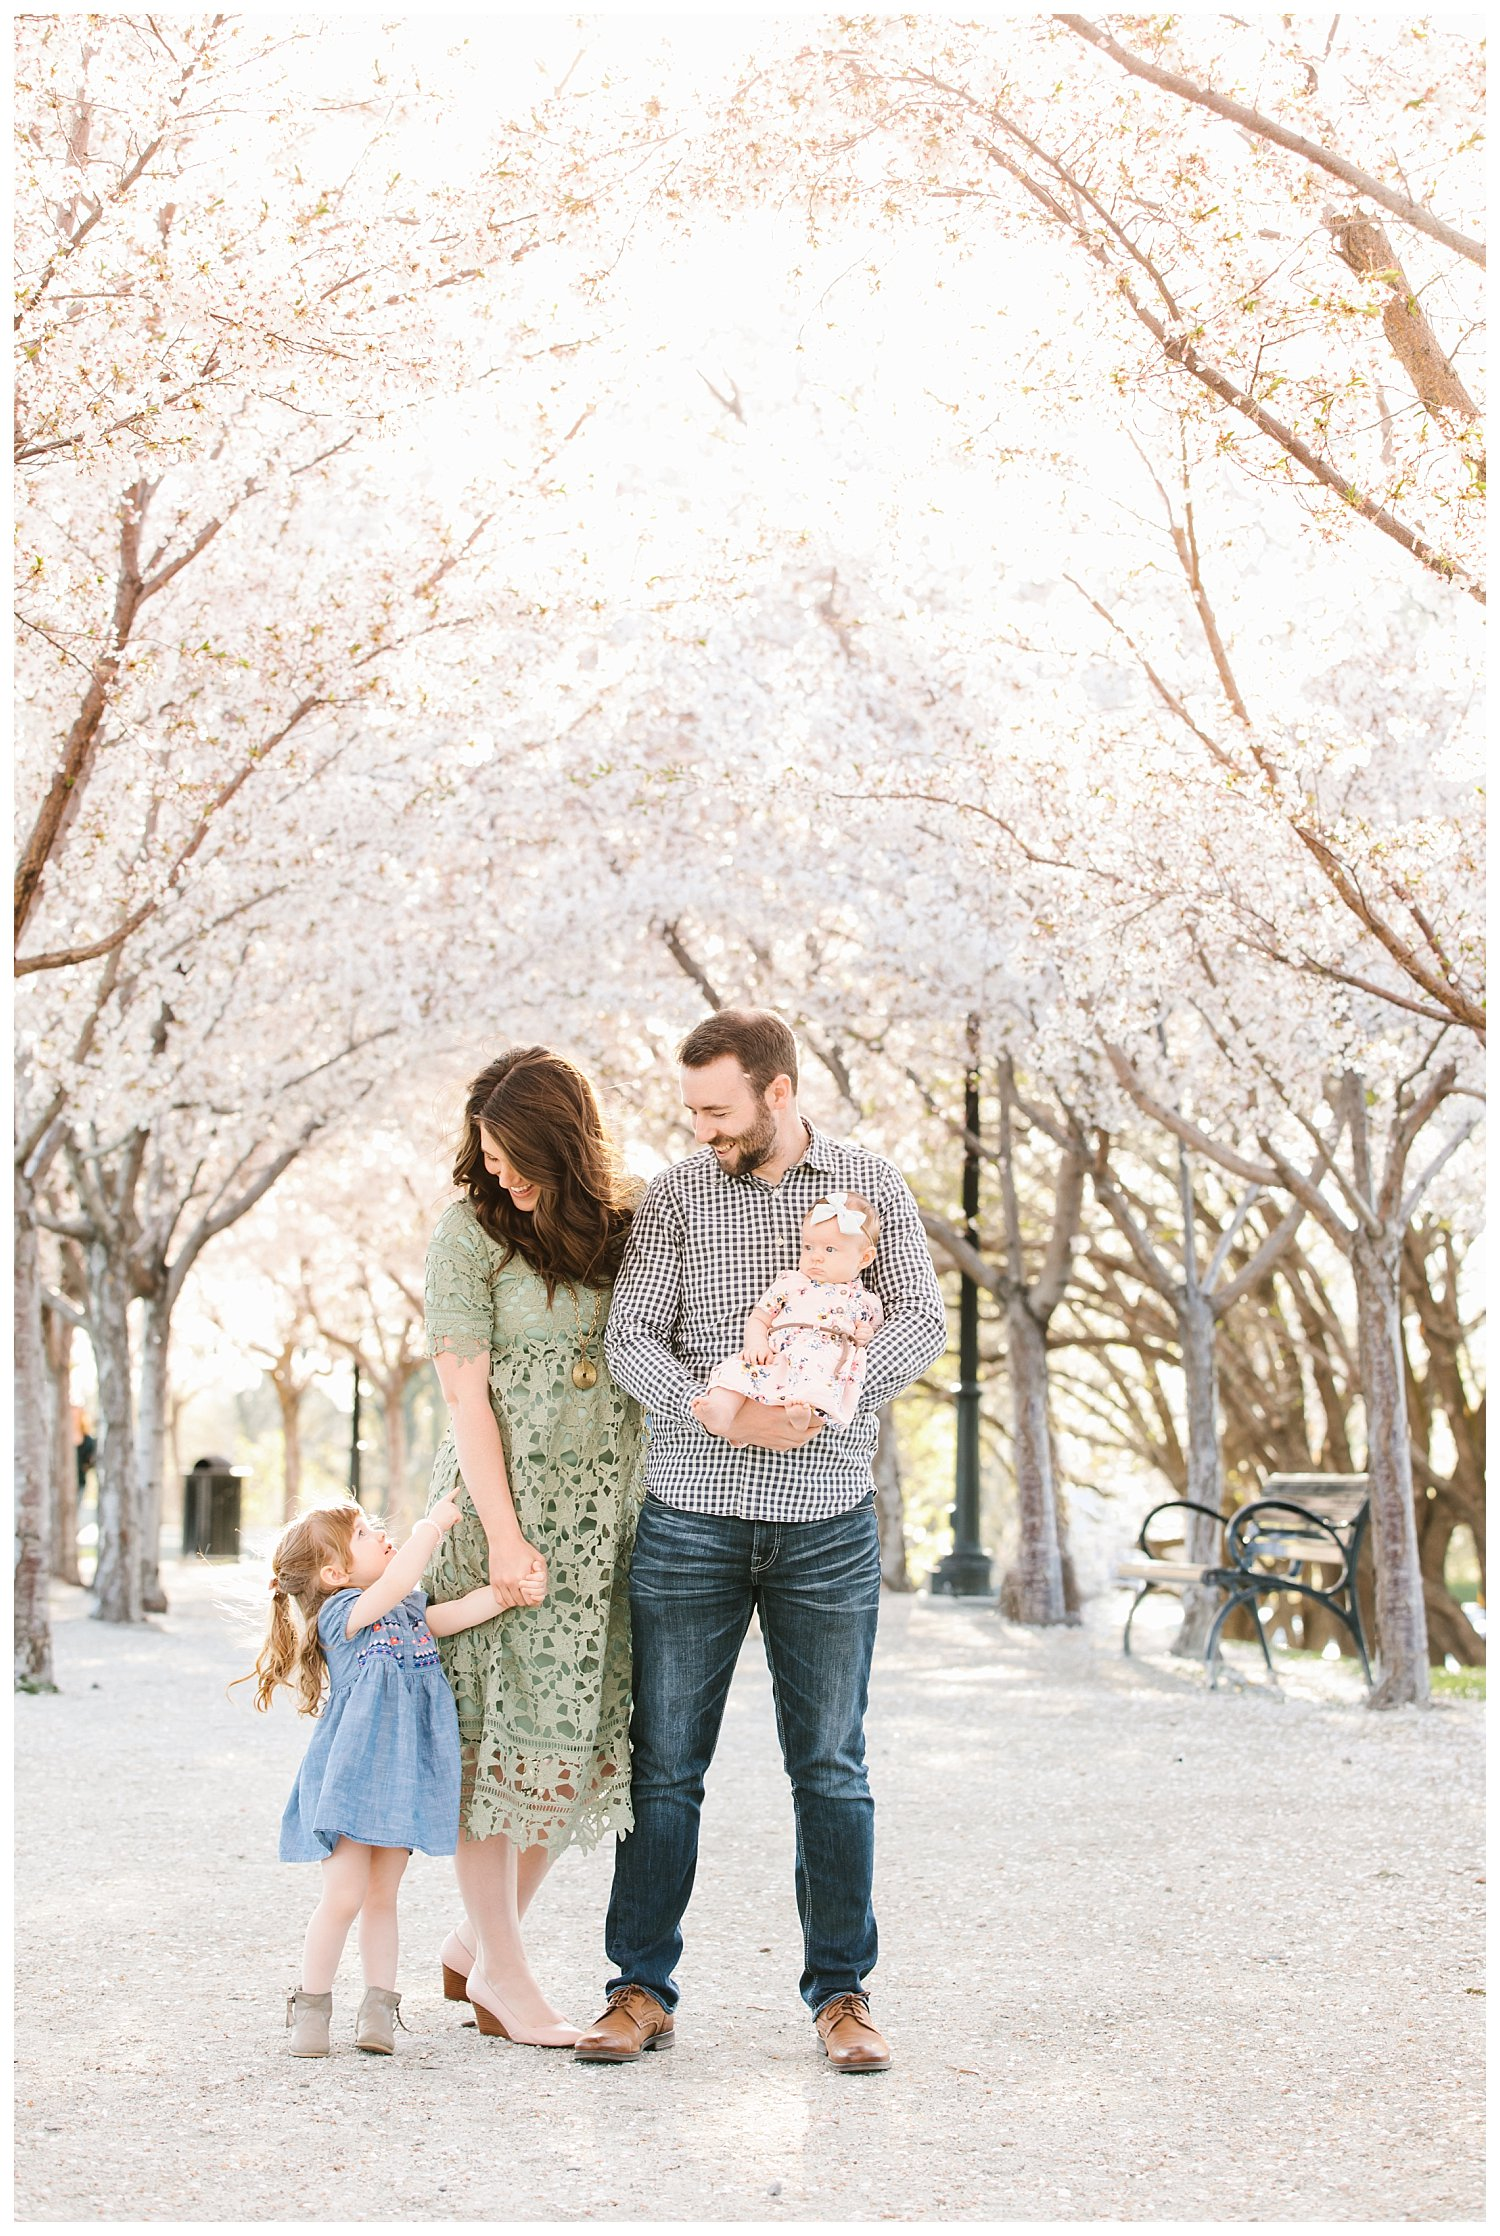 Spring Family Session at the Utah State Capitol 2